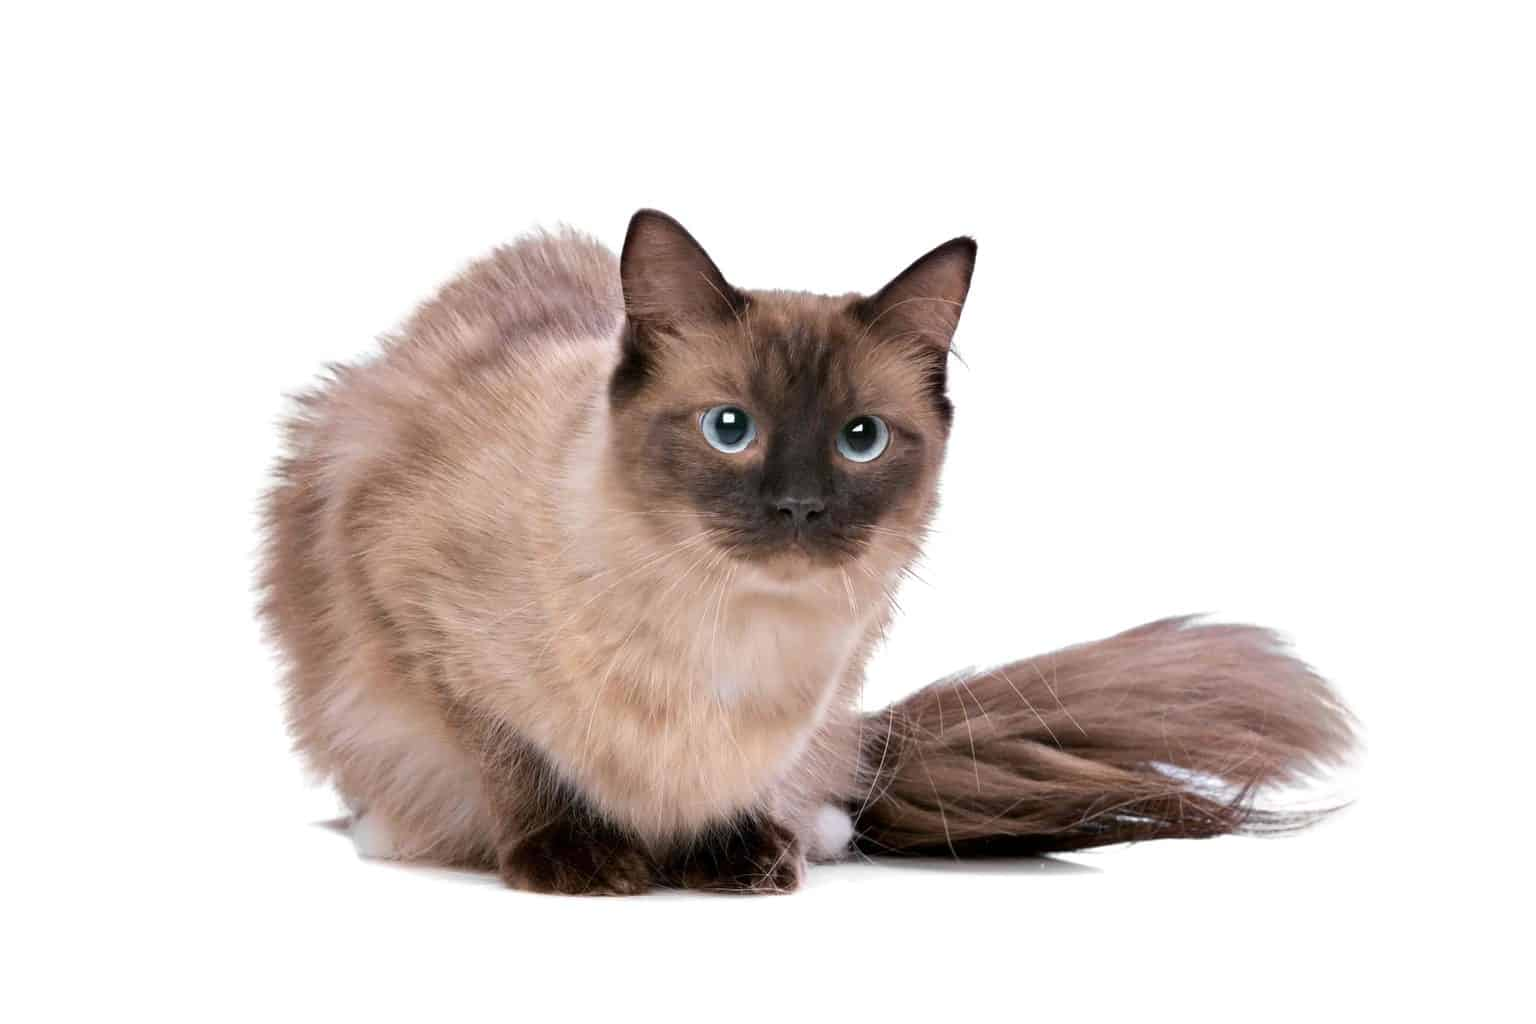 Why do Ragdoll cats have to stay indoors